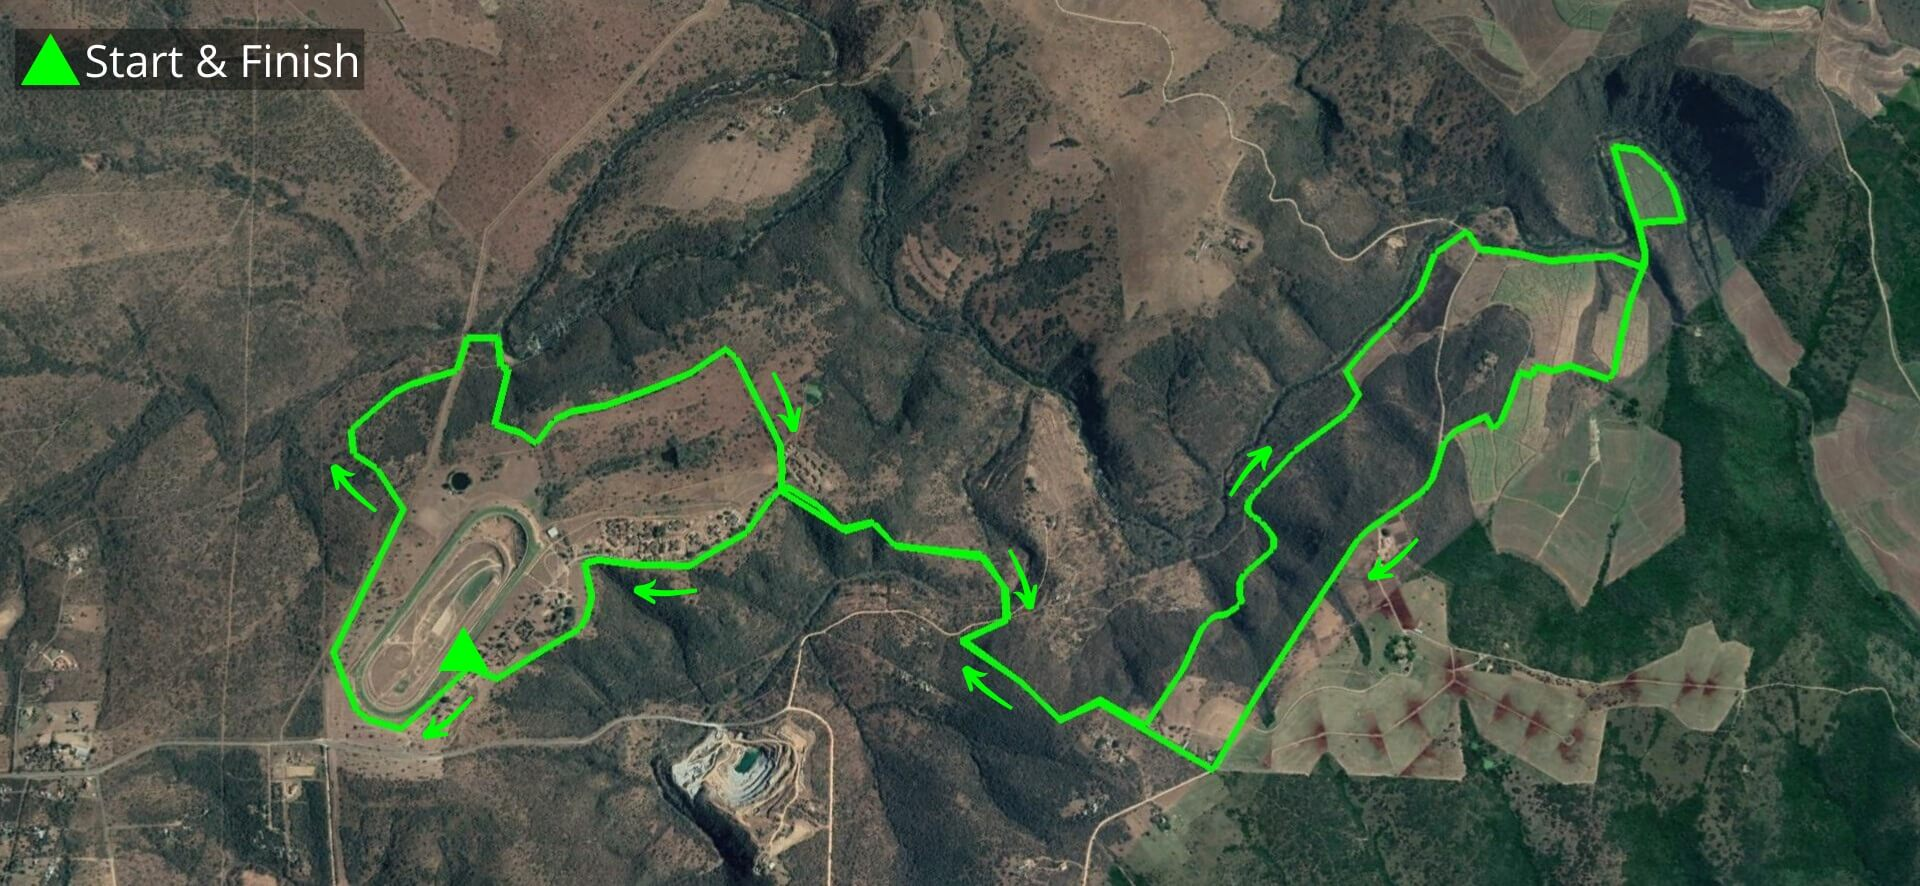 KZNTR Winter Series Dusi Trails May20 - 20km Course Route (Directioned)